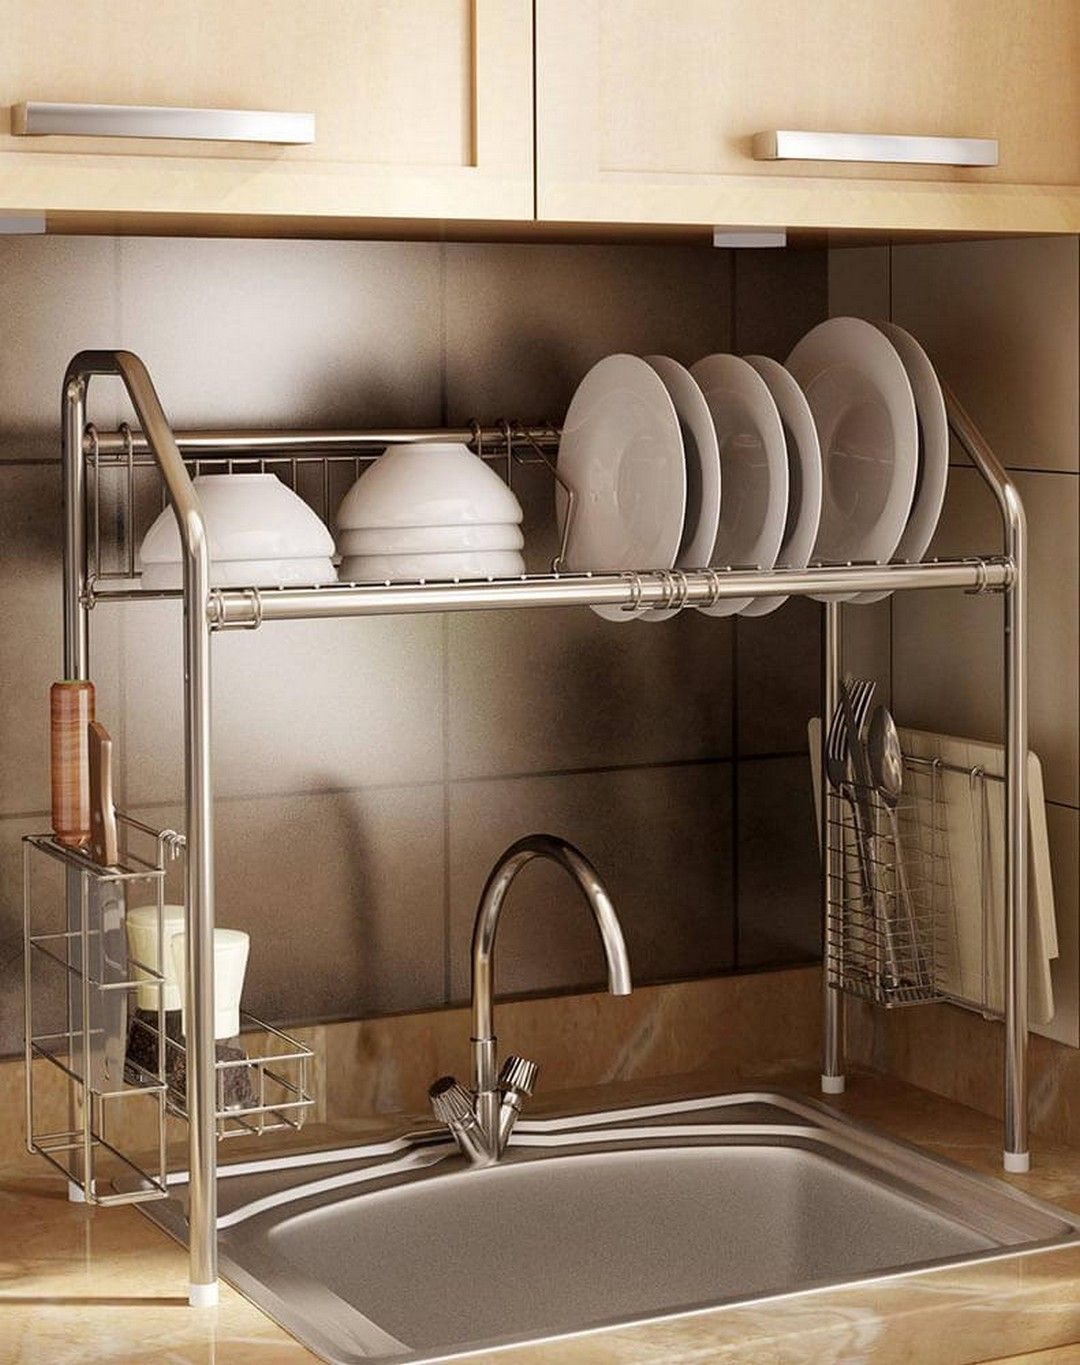 Small Kitchen Remodel and Storage Hacks on a Budget   Wohnideen ...